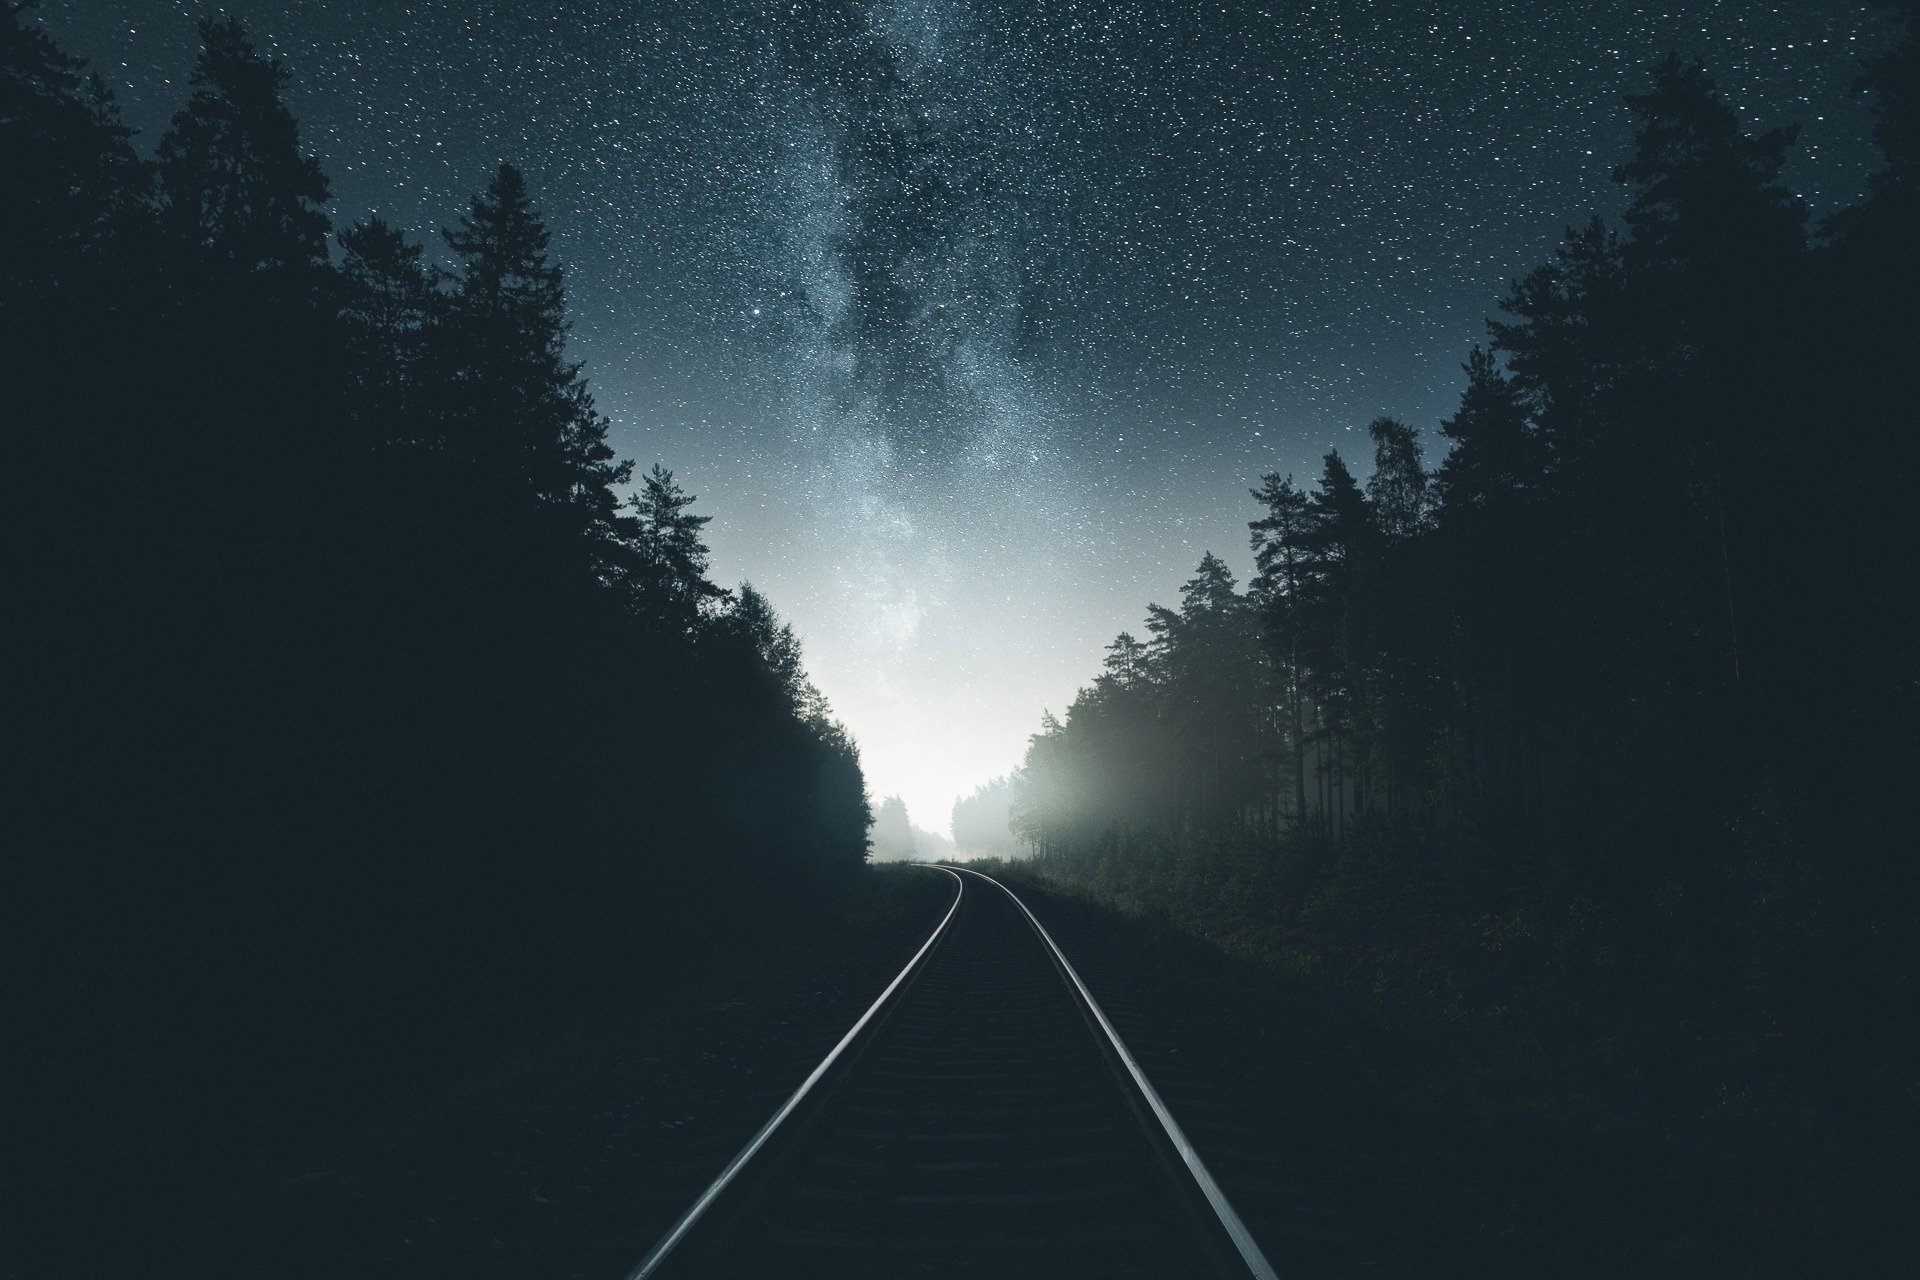 Man Made - Railroad  Night Sky Starry Sky Wallpaper